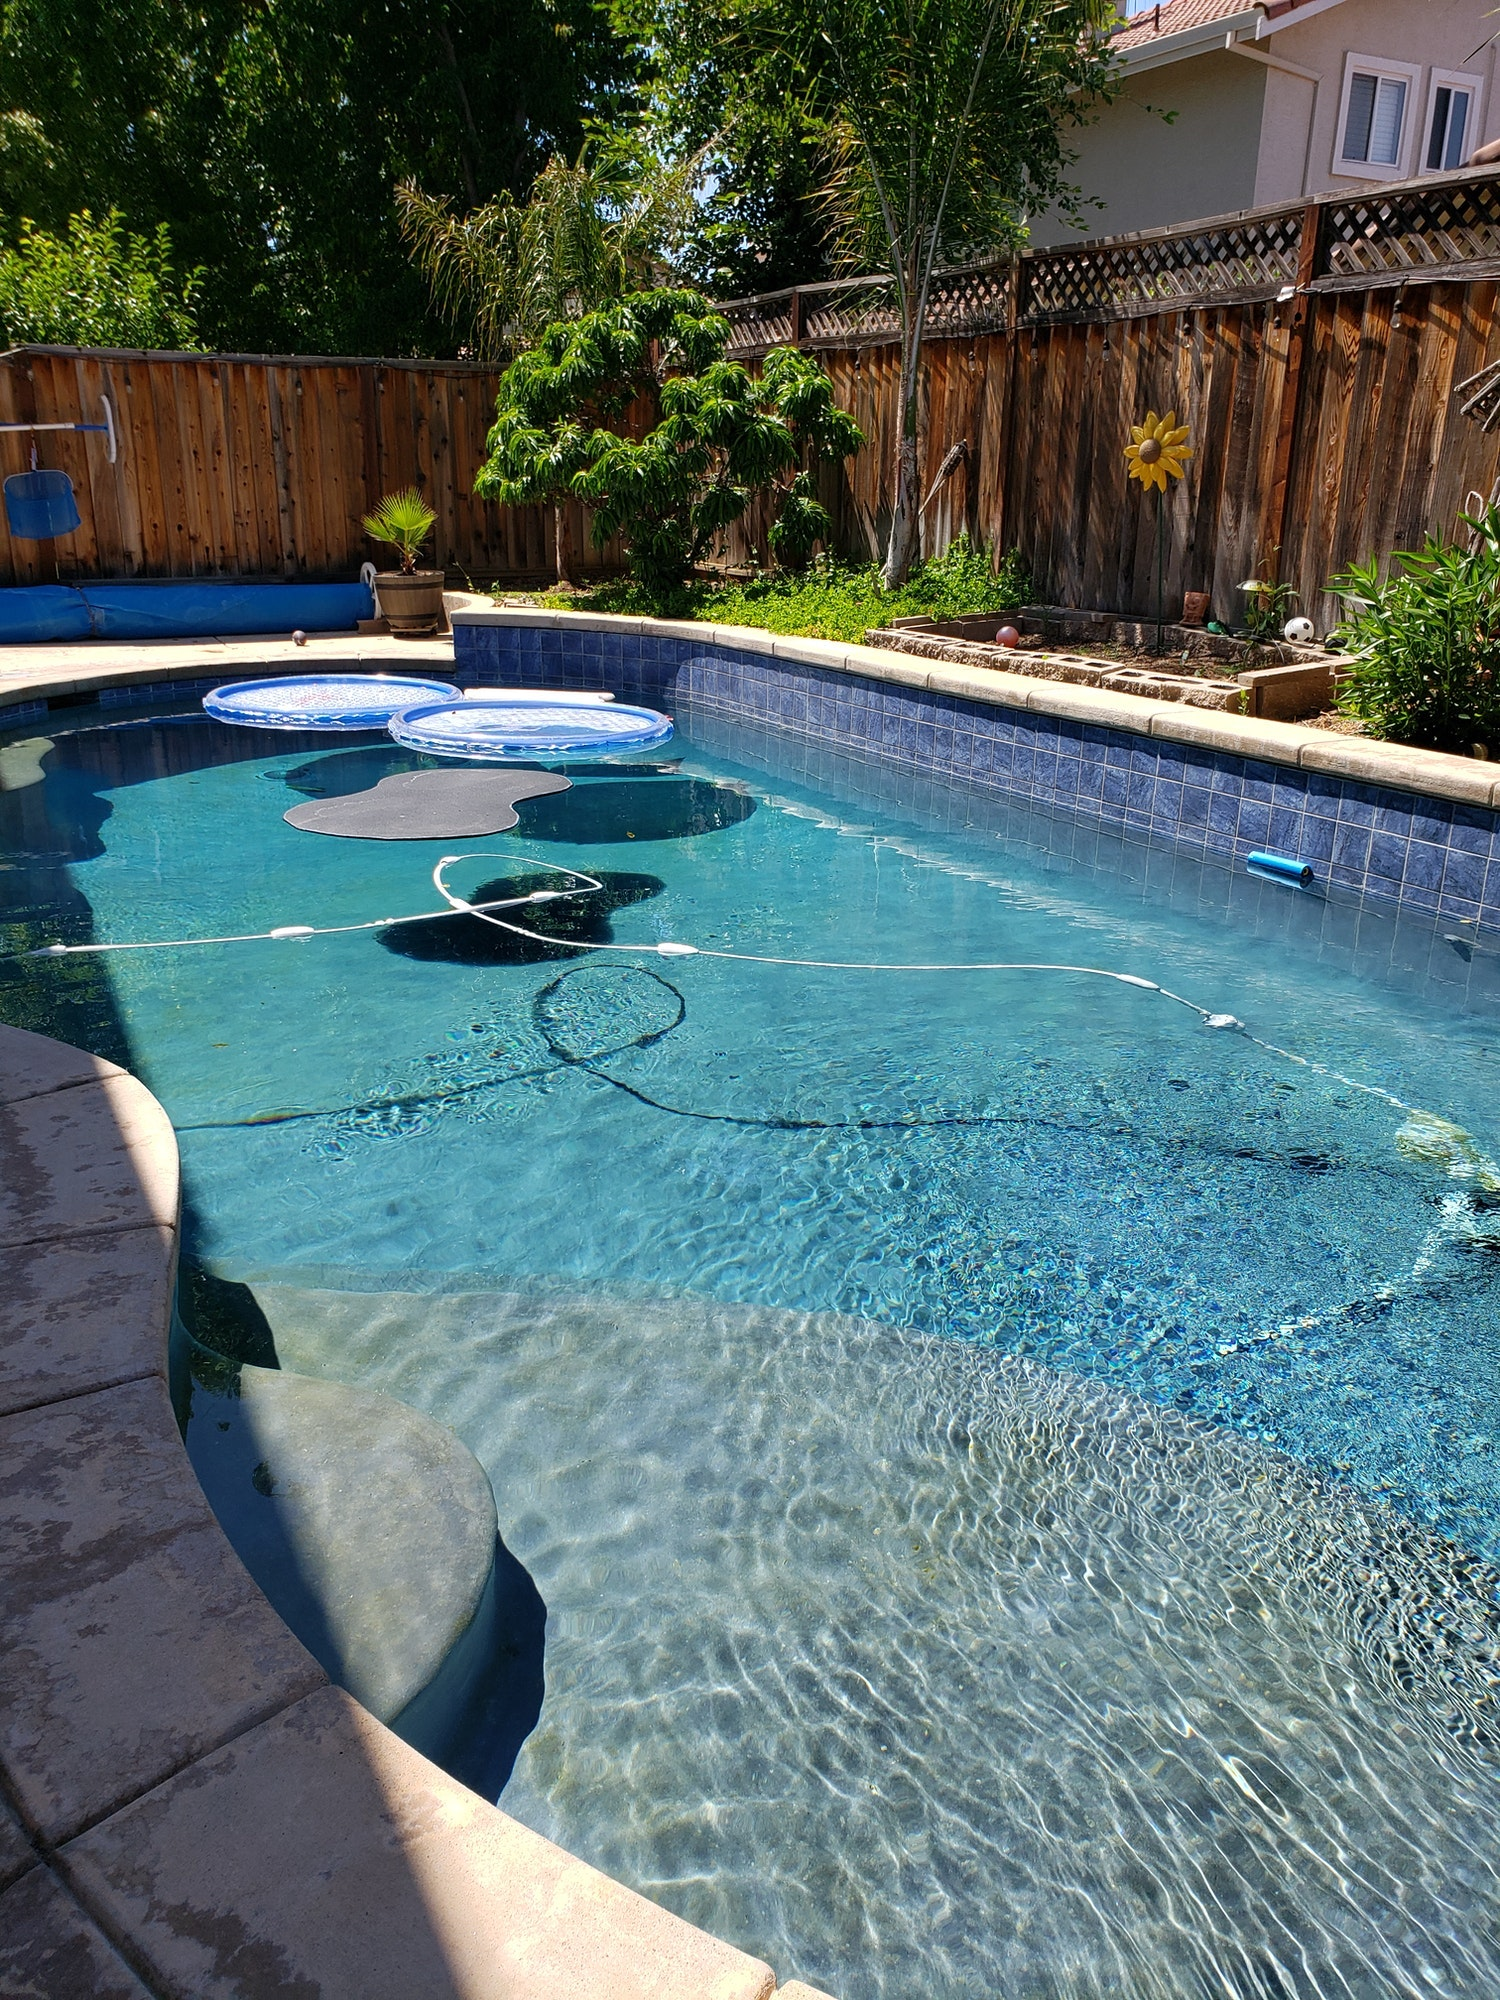 May contain: pool, water, yard, nature, outdoors, swimming pool, and flagstone